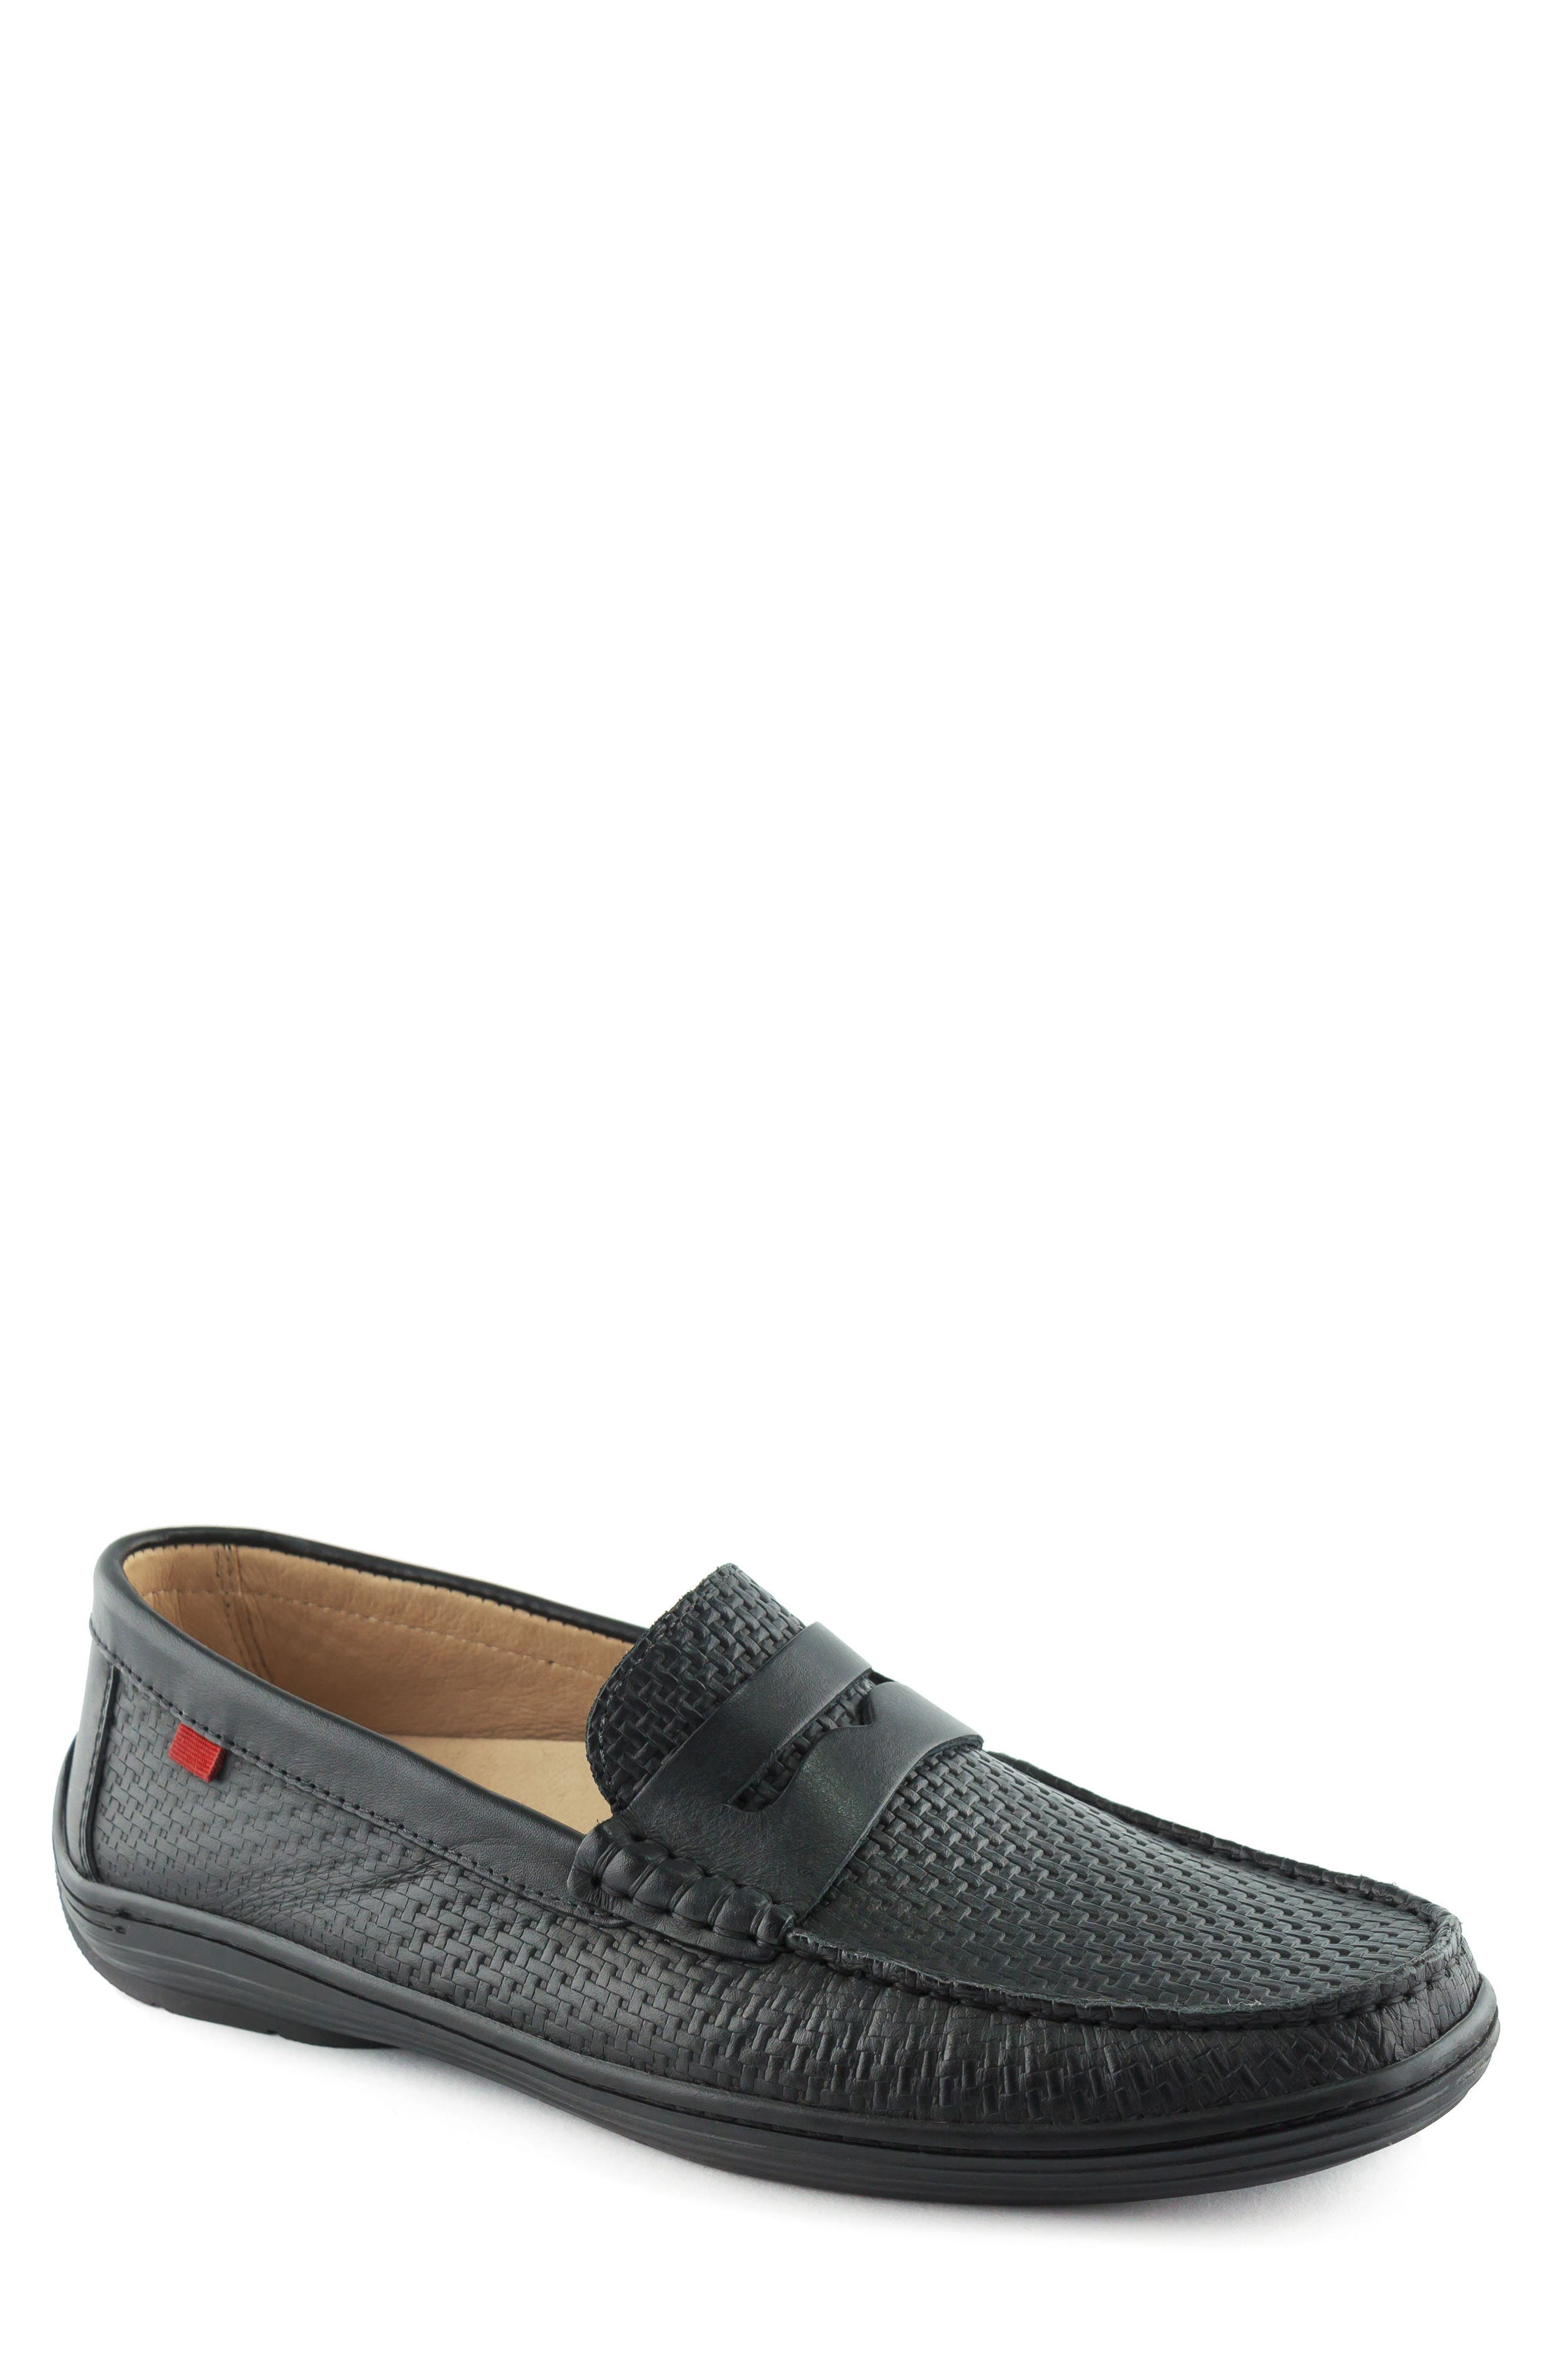 Atlantic Penny Loafer,                             Main thumbnail 2, color,